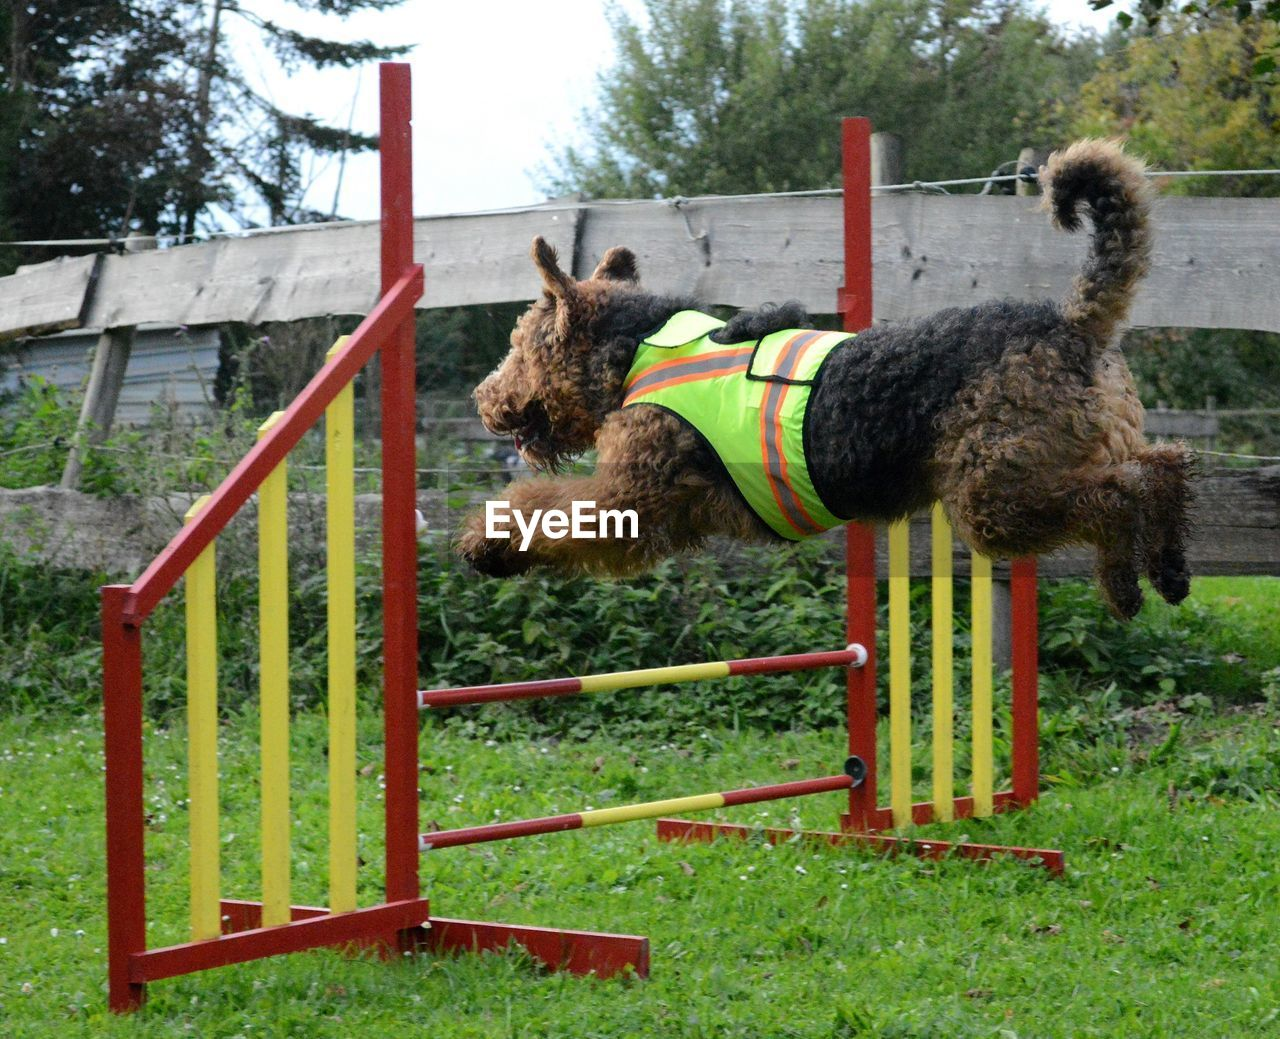 Airedale Terrier Jumping Over Metal Structure At Park